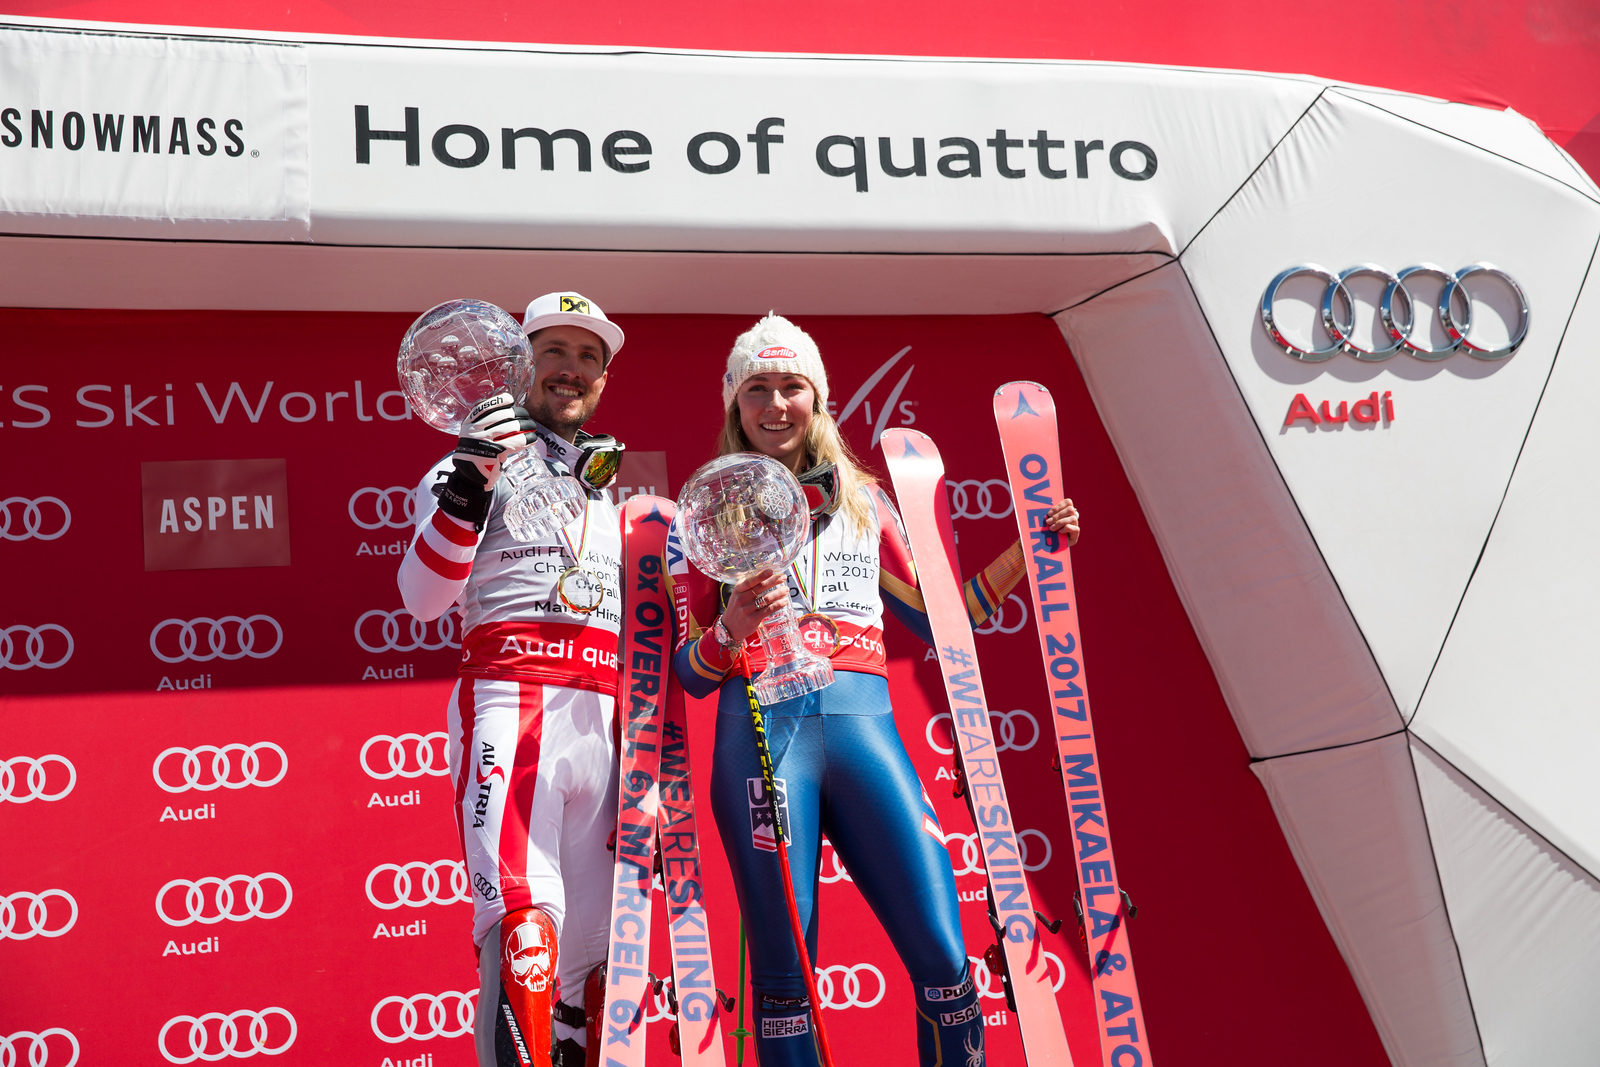 Marcel Hirscher and Mikaela Shiffrin 2016-17 Alpine Overall World Cup Champion Crystal Globe 2017 Audi FIS Ski World Cup finals in Aspen, CO. Photo: U.S. Ski Team